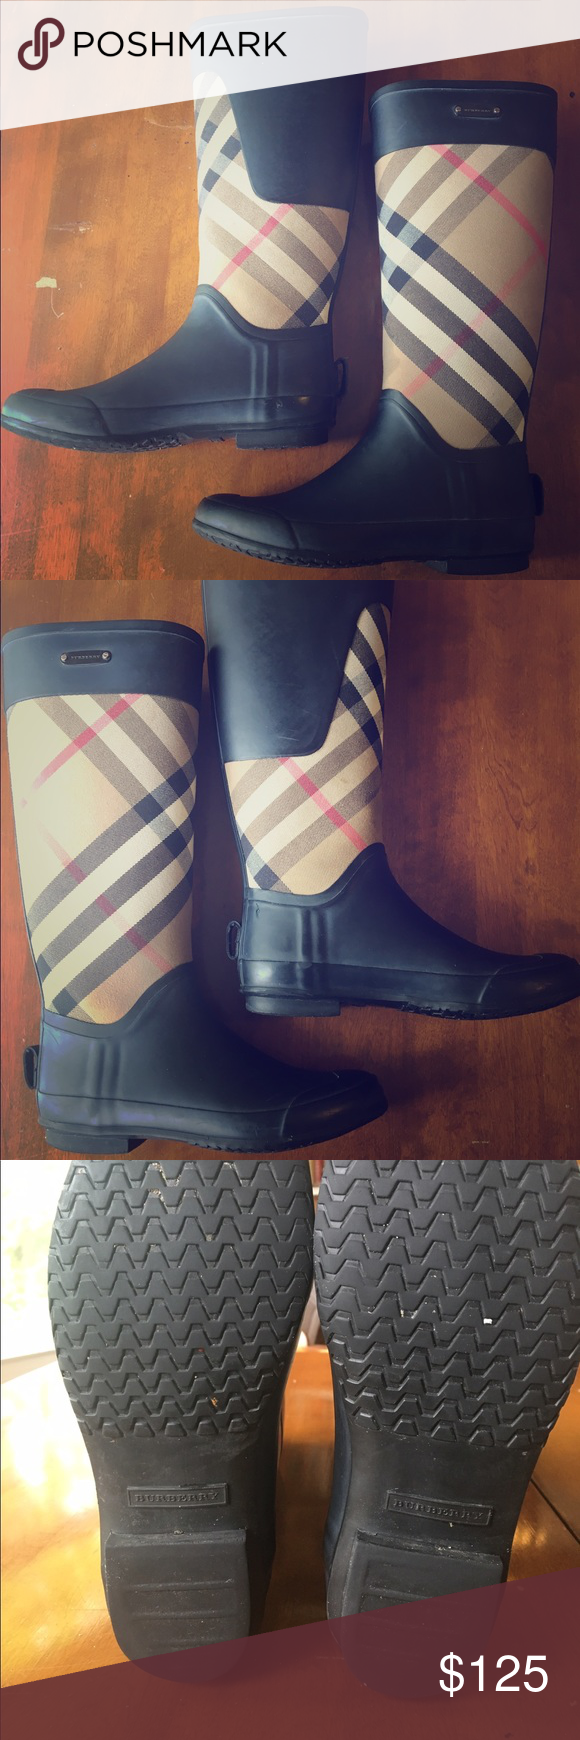 Burberry Rain Boots Clemence House Check size 38 Awesome boots! These are 100% authentic Burberry Rain boots. Wardrobe staple! These boots do have some wear on them, overall condition is 7/10. They have tons of life left in them though! Super durable and great quality! Burberry Shoes Winter & Rain Boots